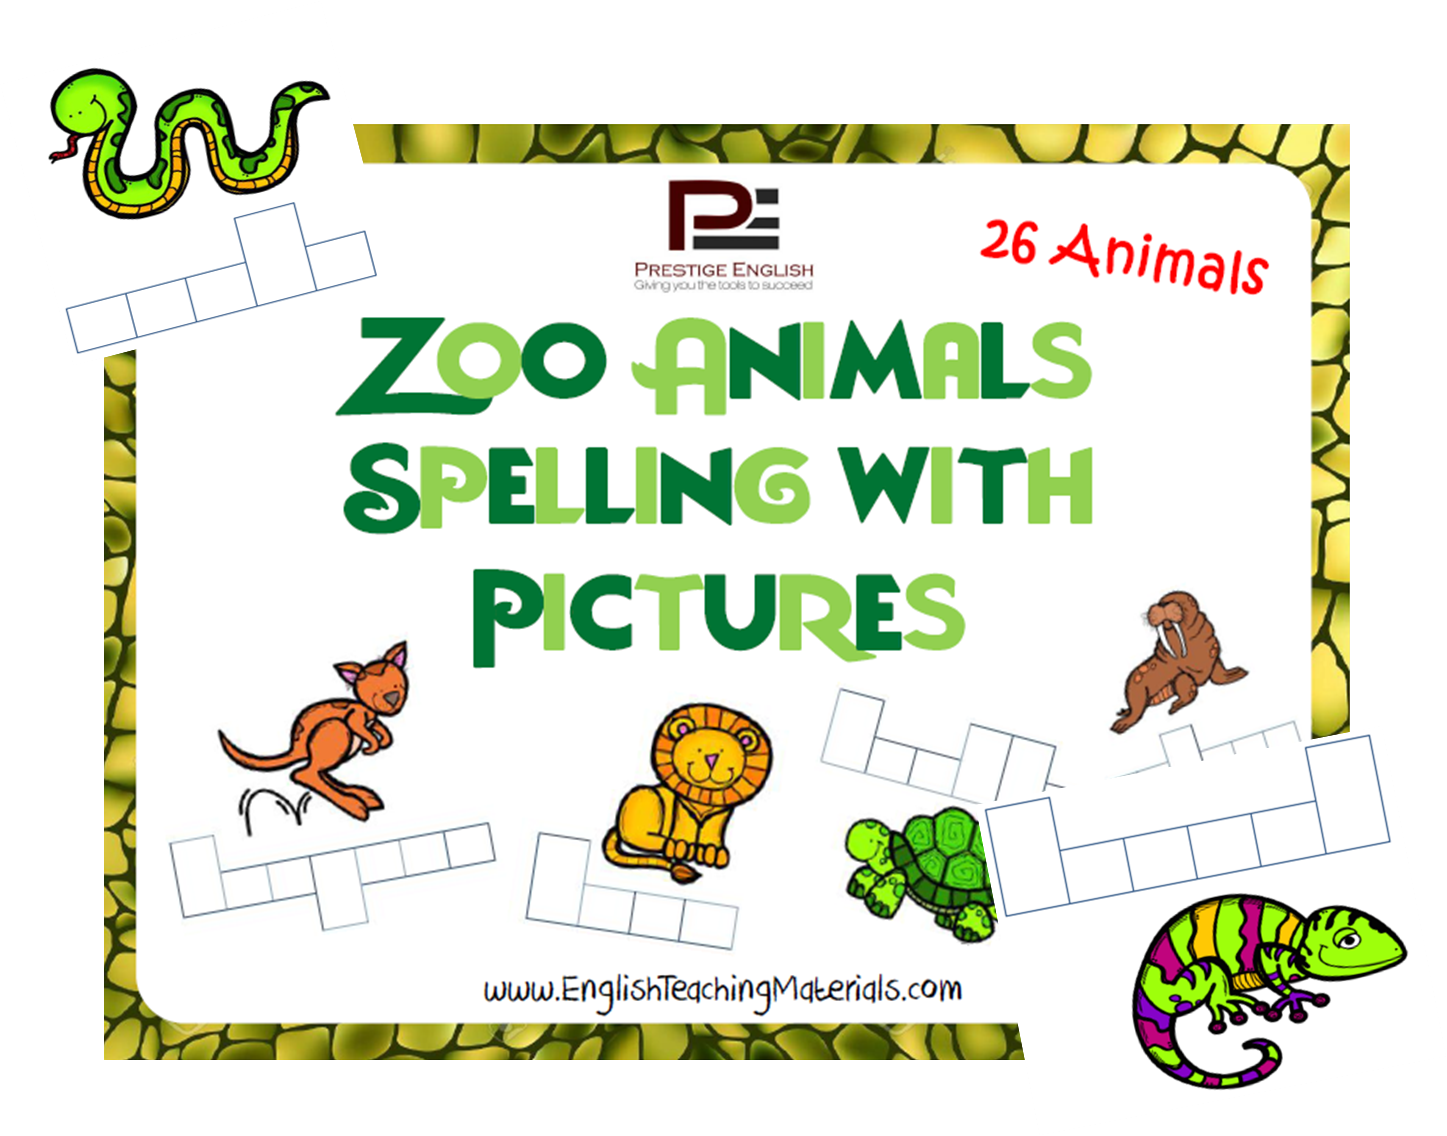 Zoo Animals Spelling With Pictures